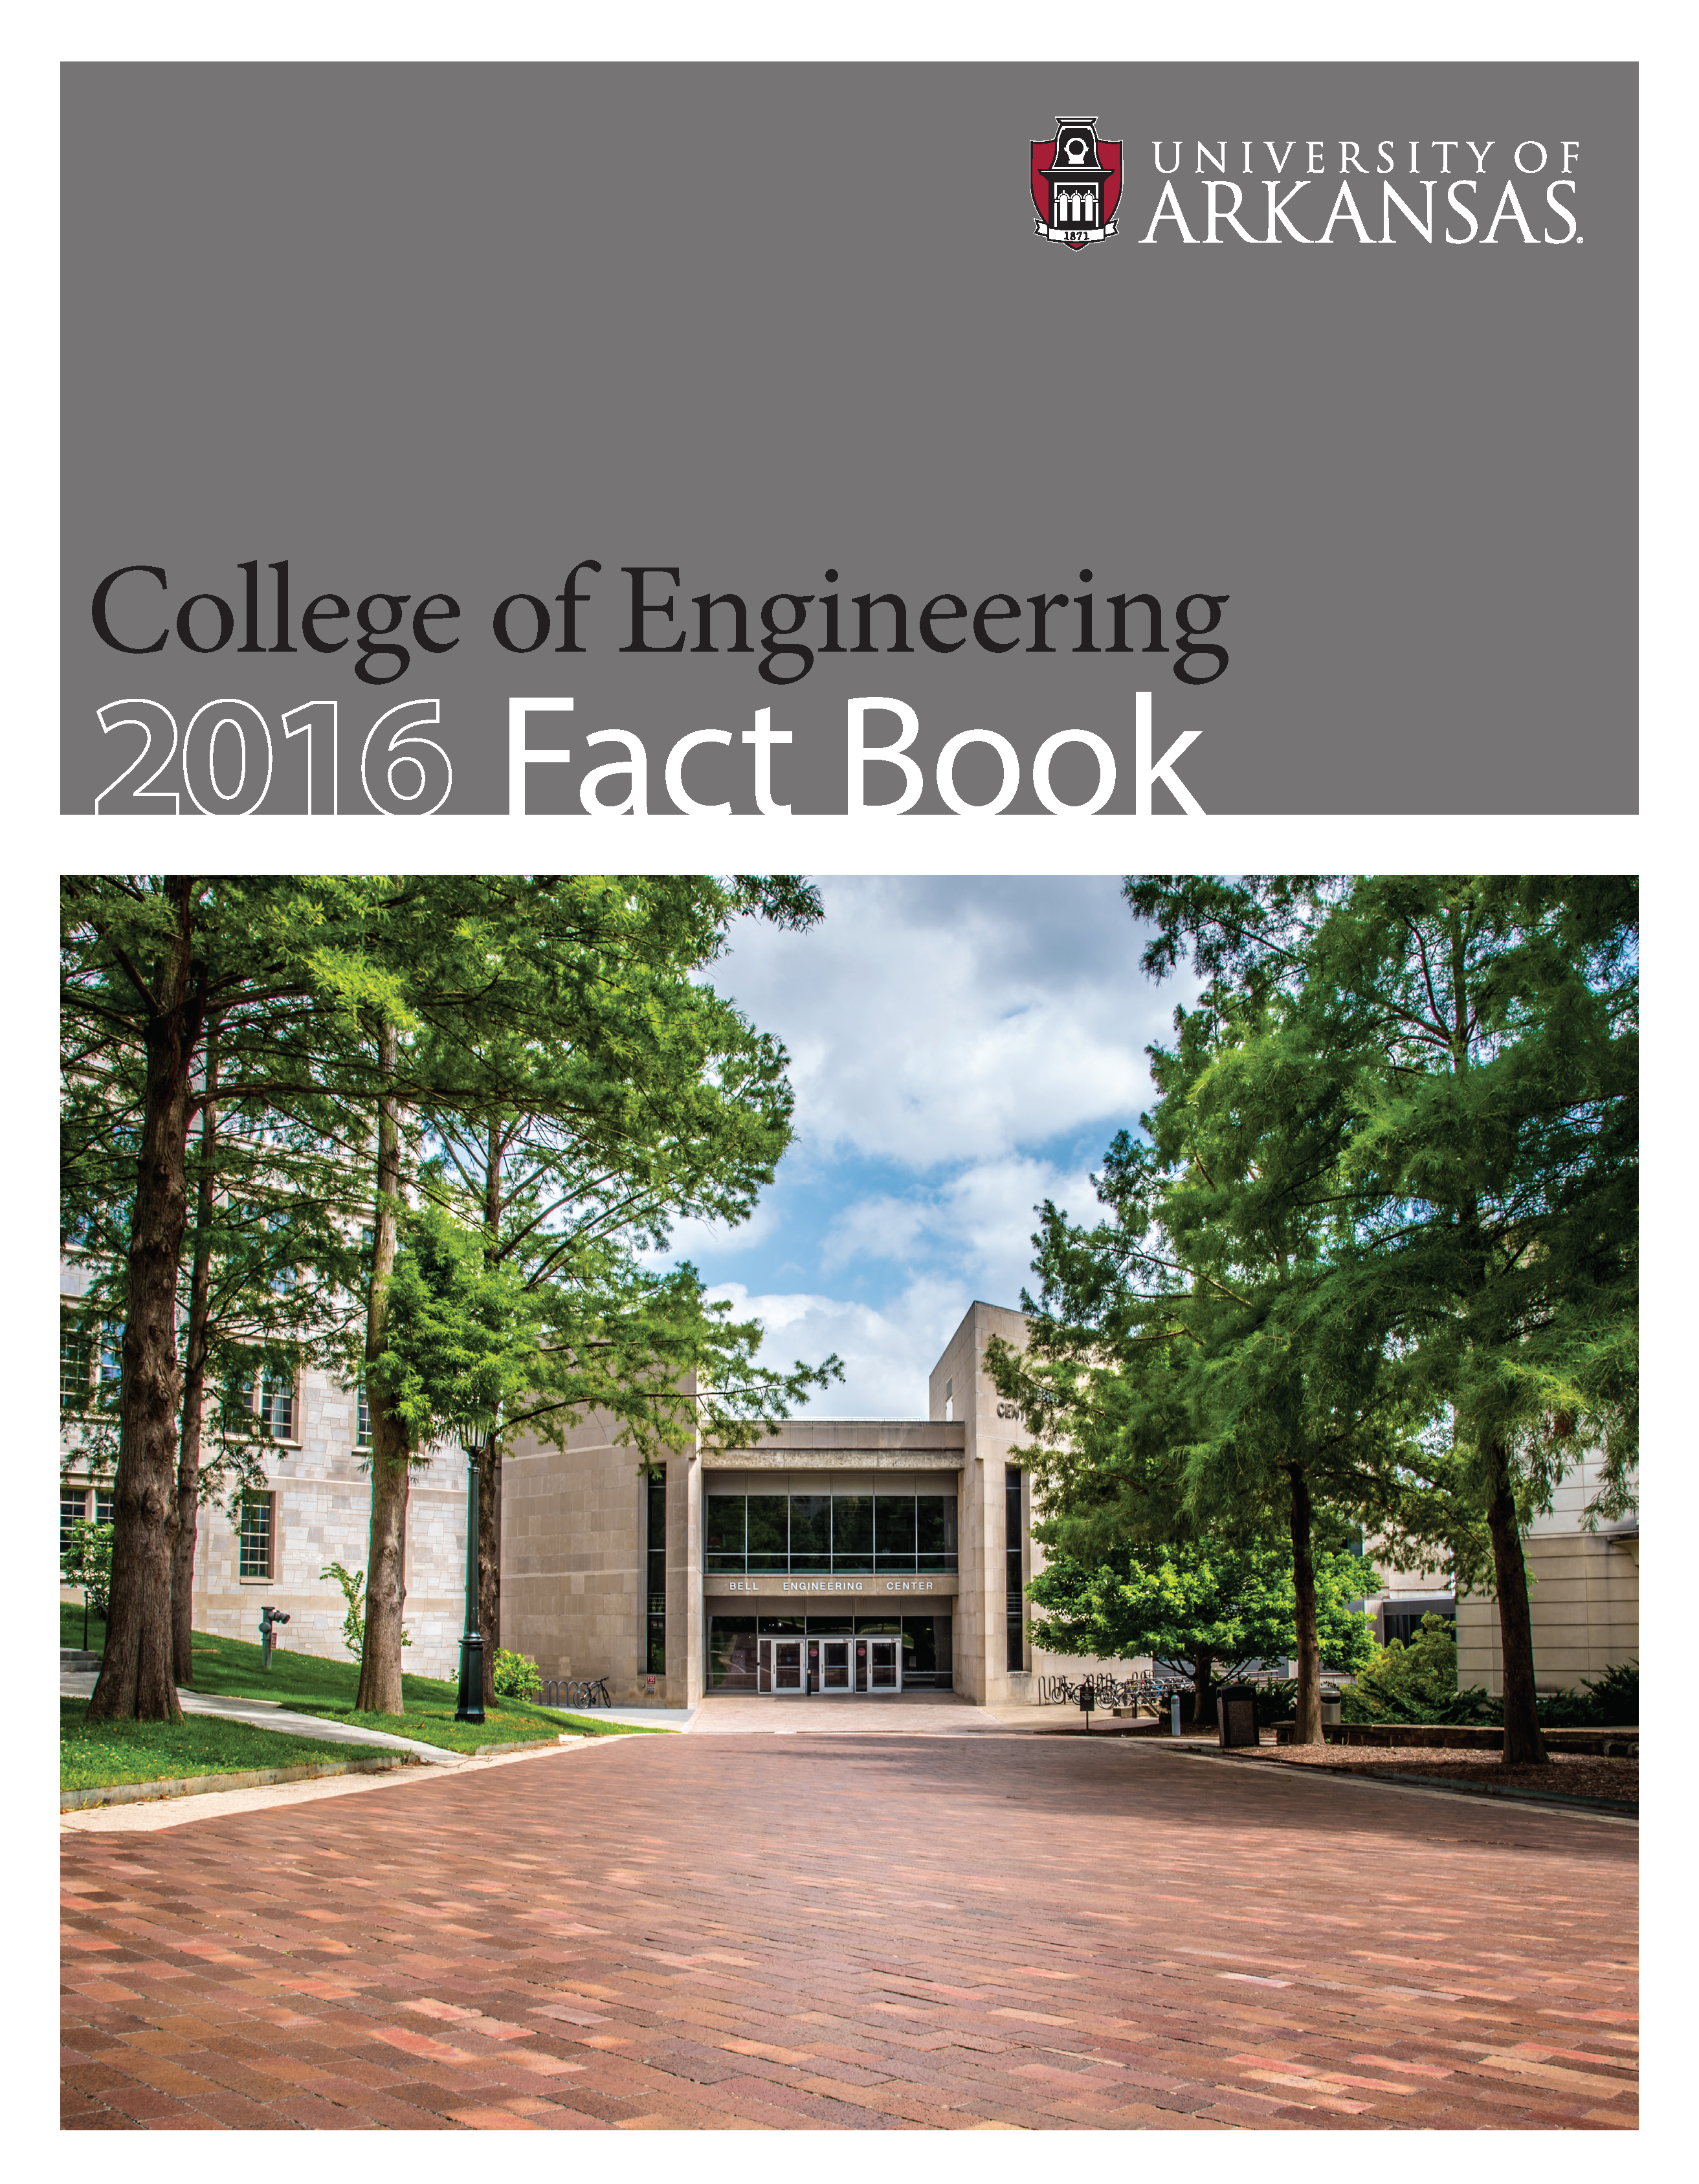 College of Engineering 2016 Fact Book